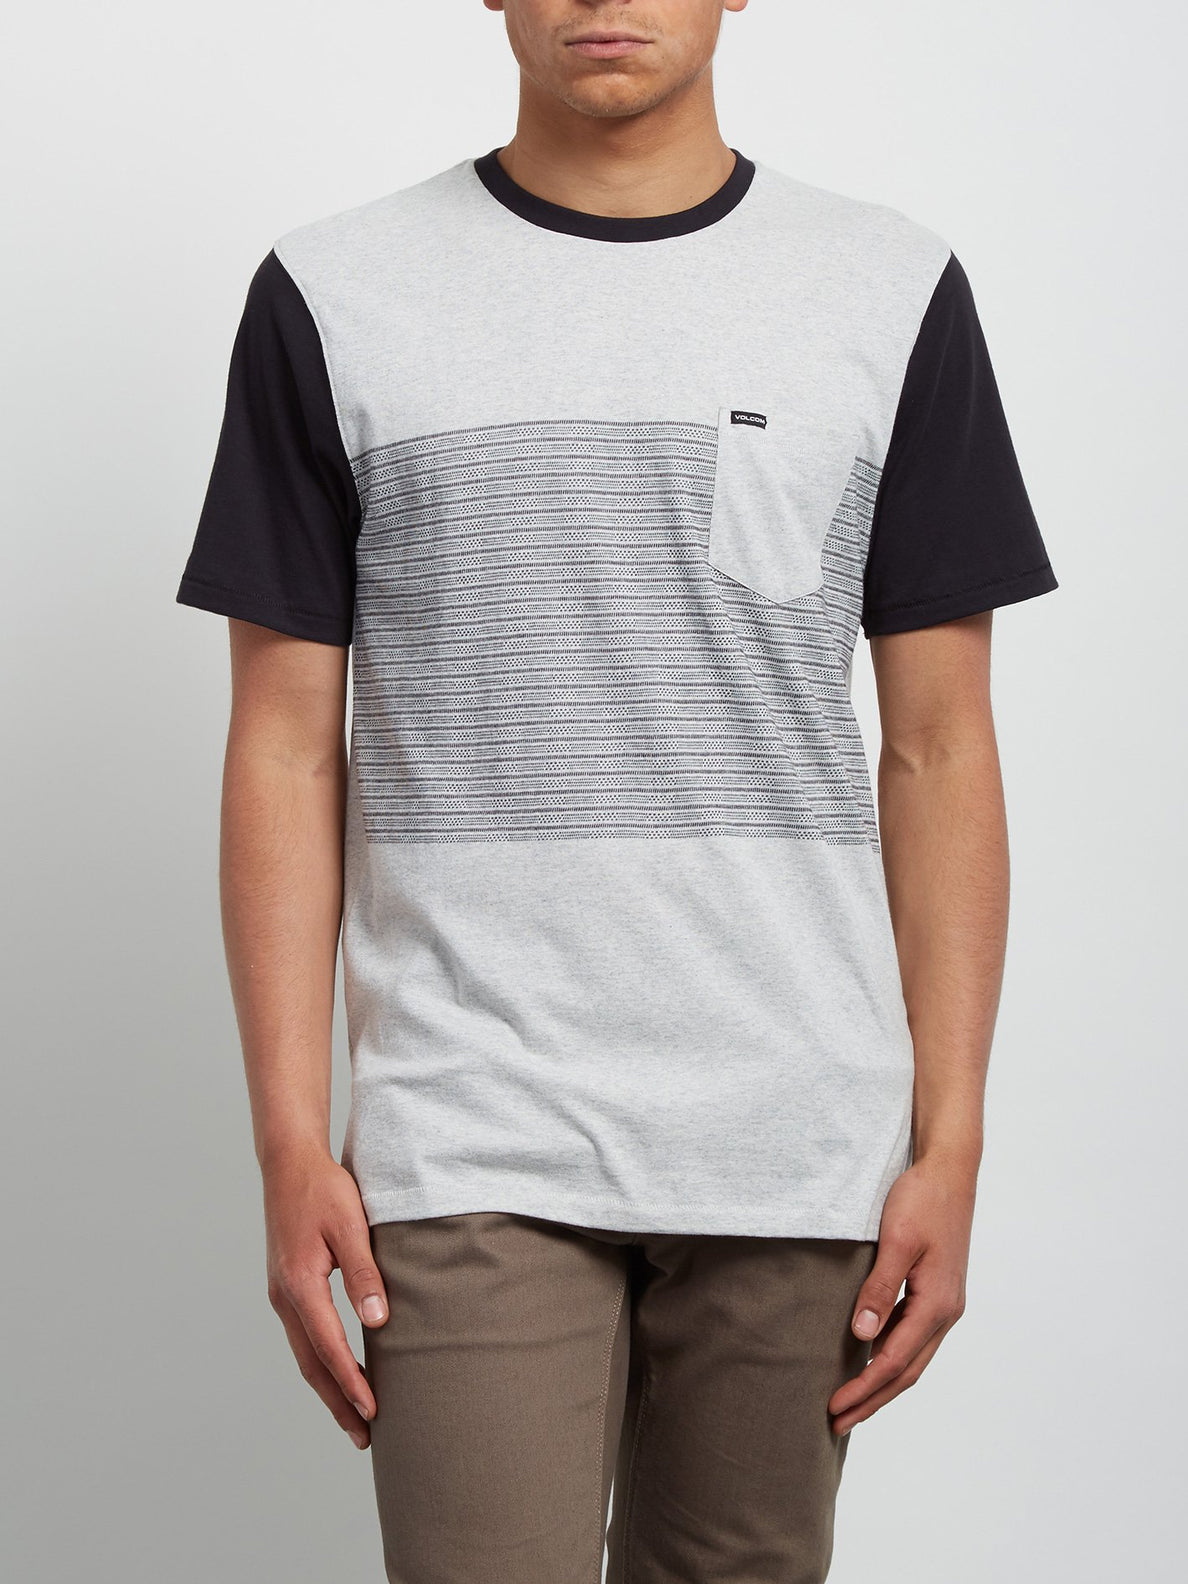 Pocket T-Shirt Threezy - Mist